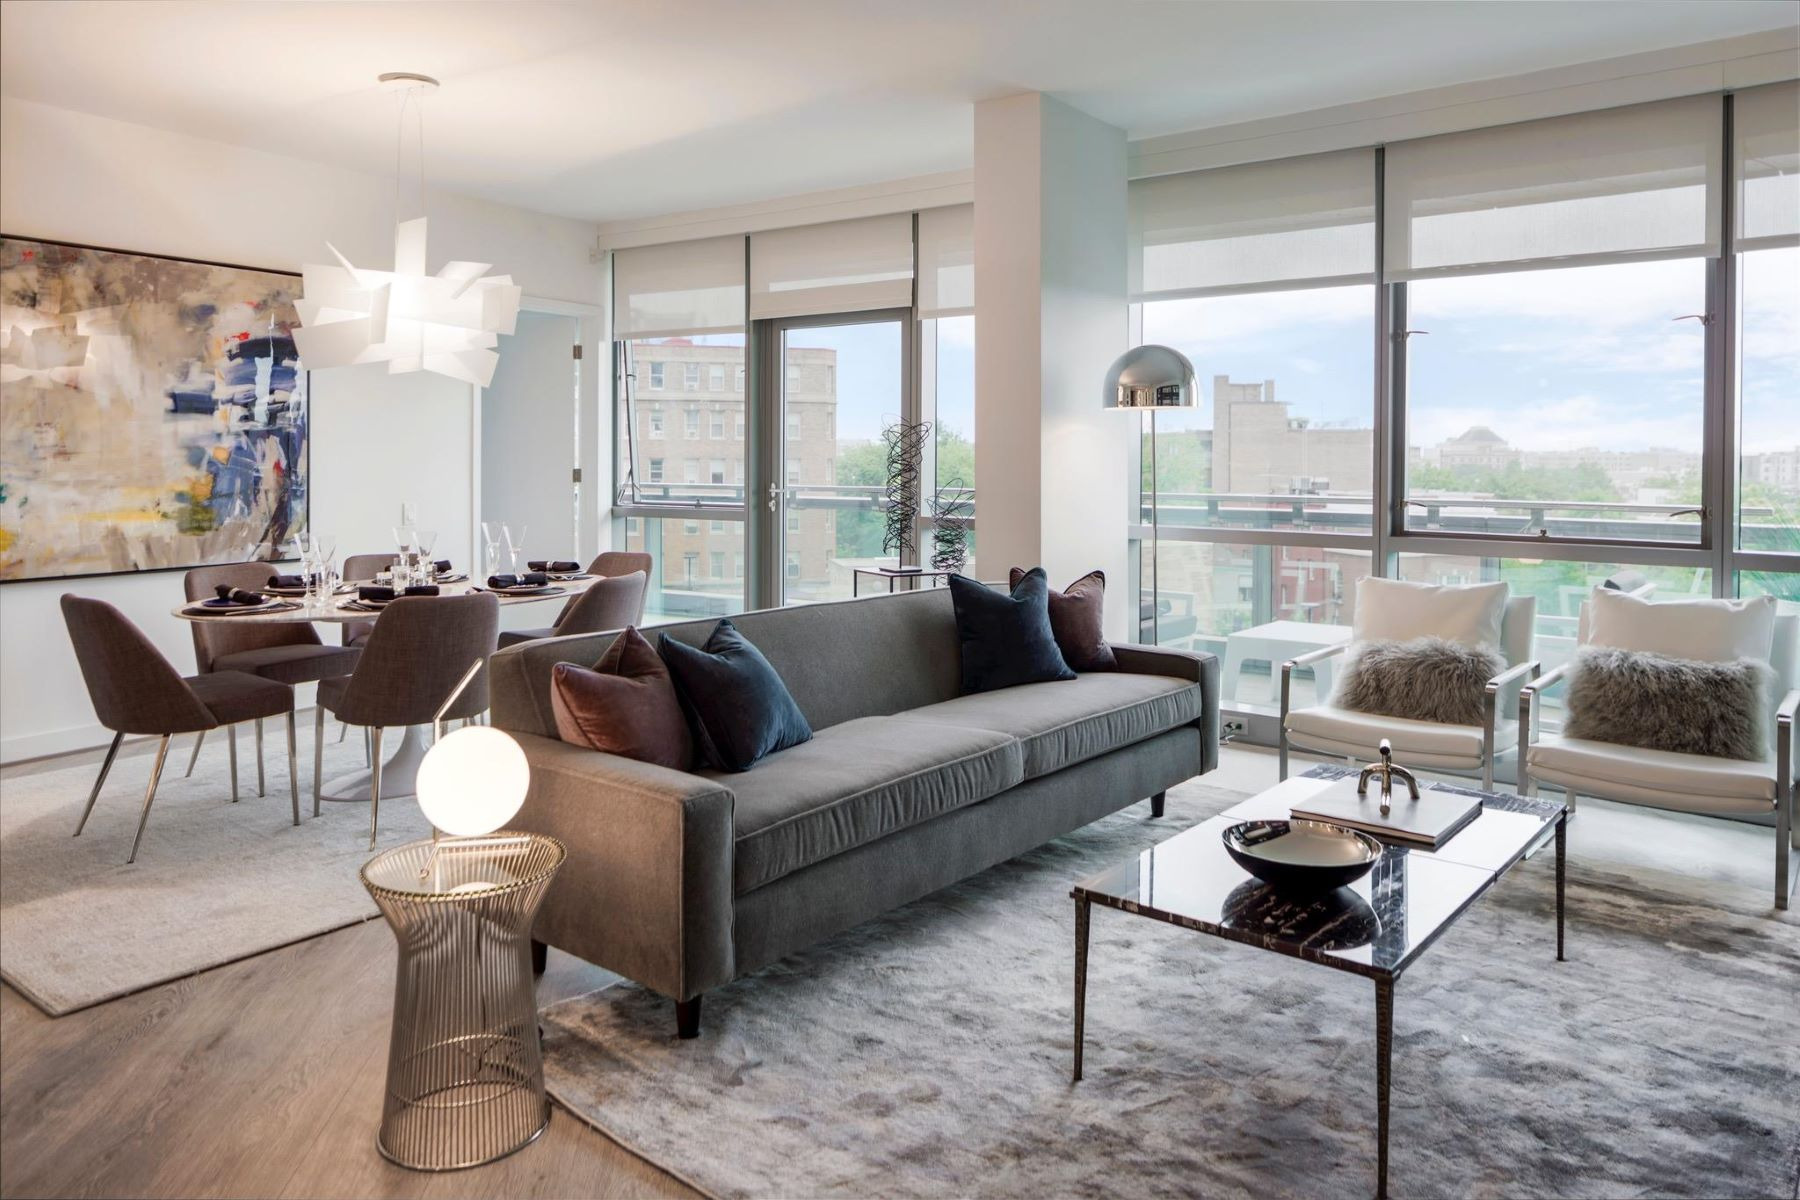 Apartment for Rent at 1901 Connecticut Ave Nw #1021 1901 Connecticut Ave Nw #1021 Washington, District Of Columbia 20009 United States